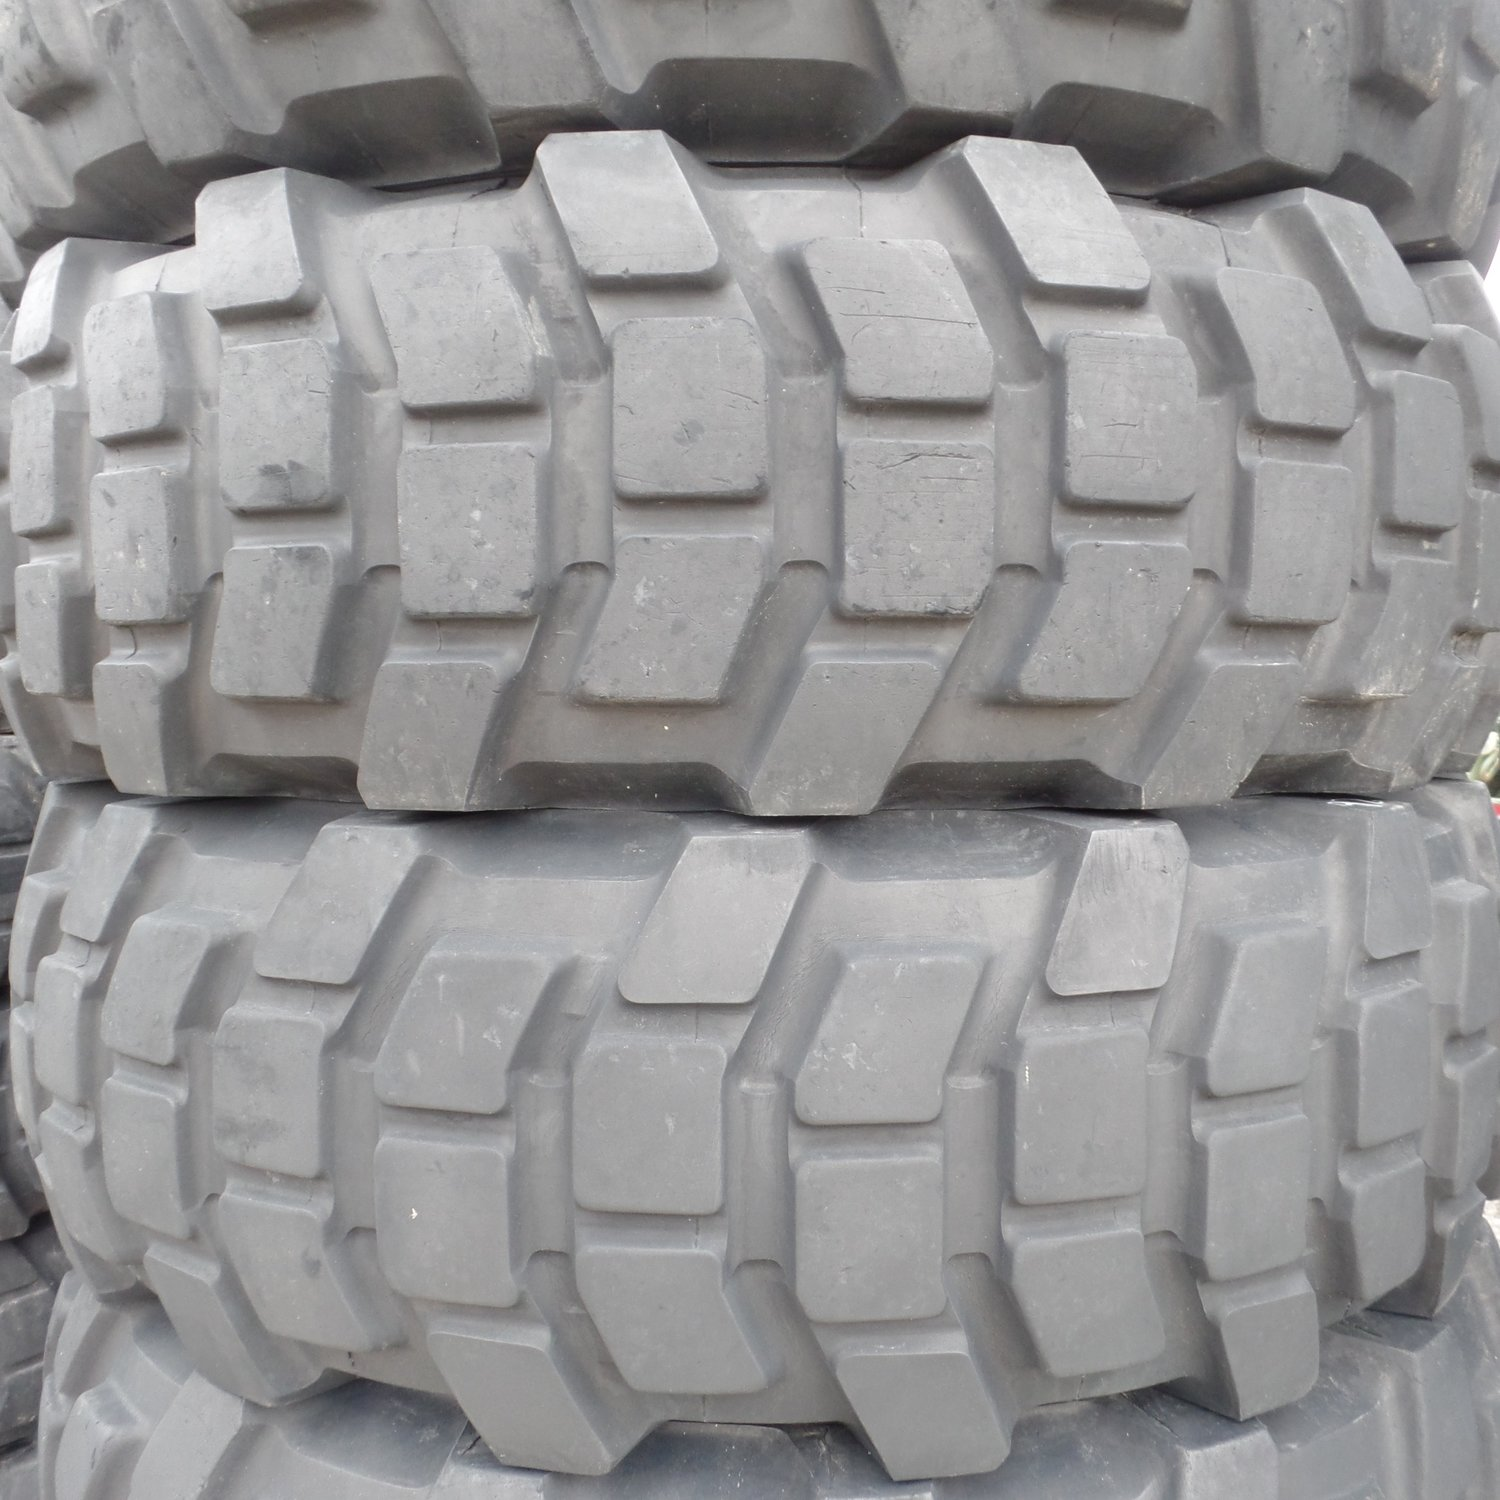 Michelin 1400 r 20 XL tires 50-75% Tread